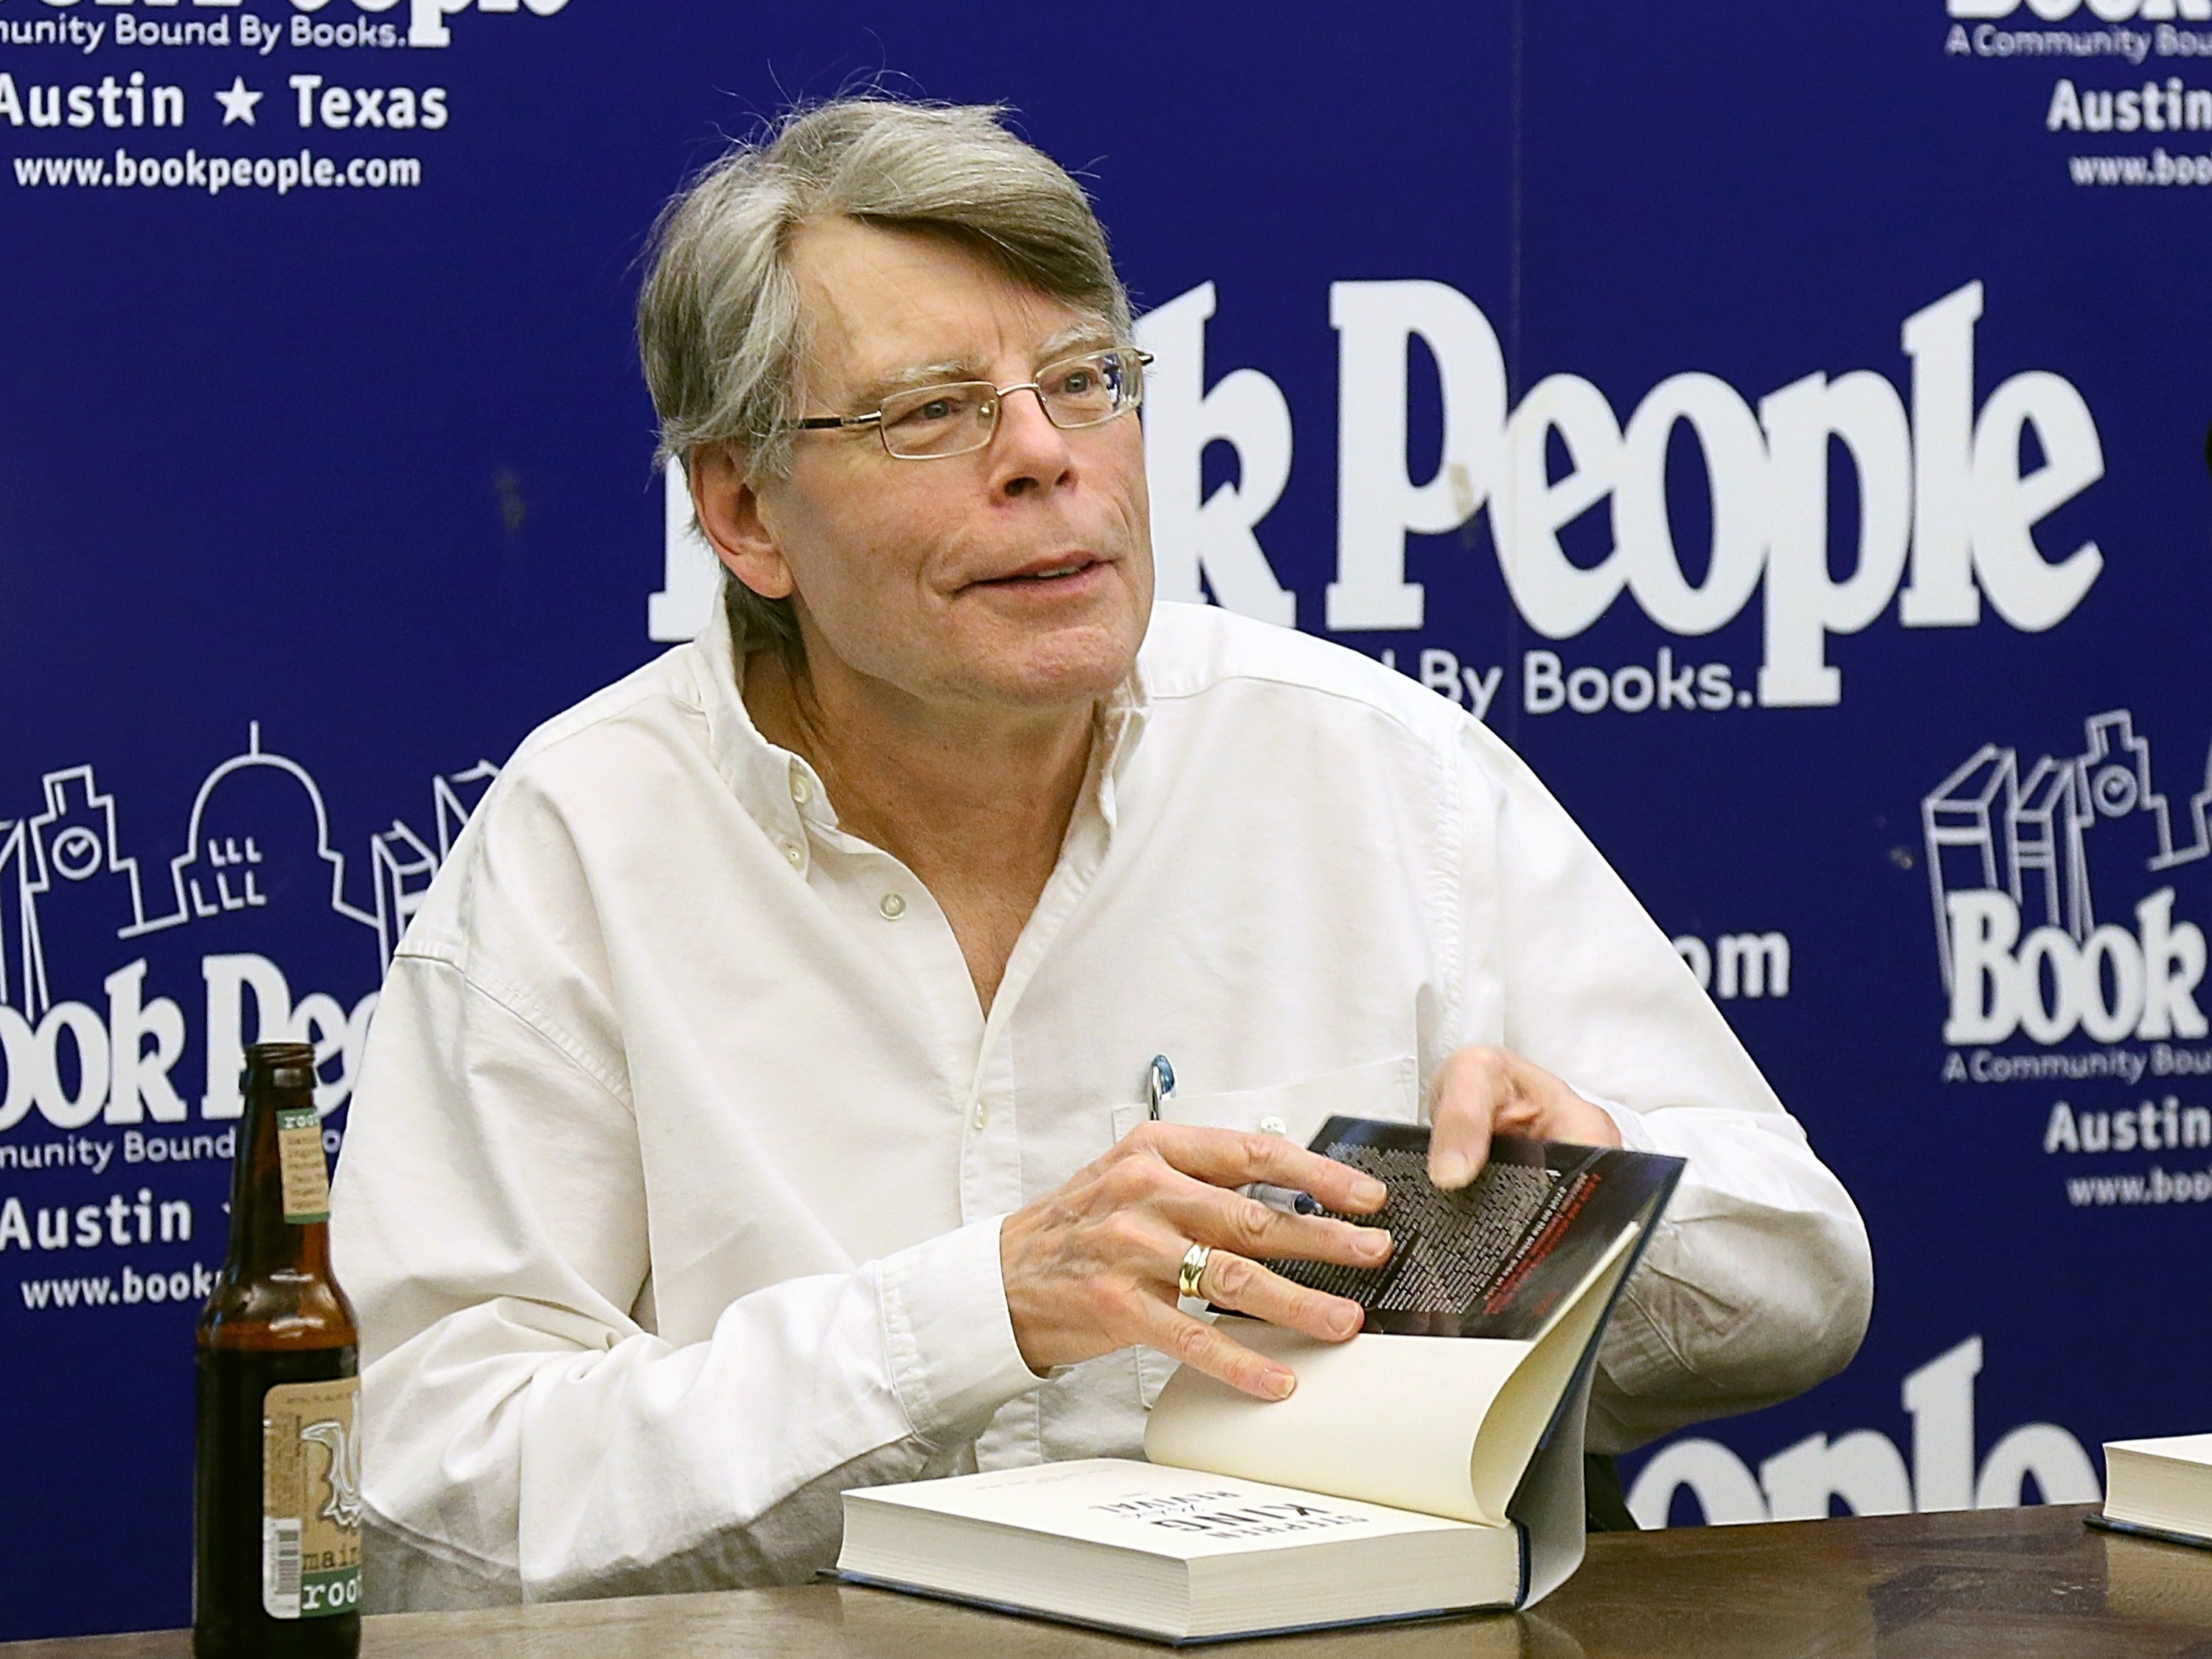 22-lessons-from-stephen-king-on-how-to-be-a-great-writer.jpg